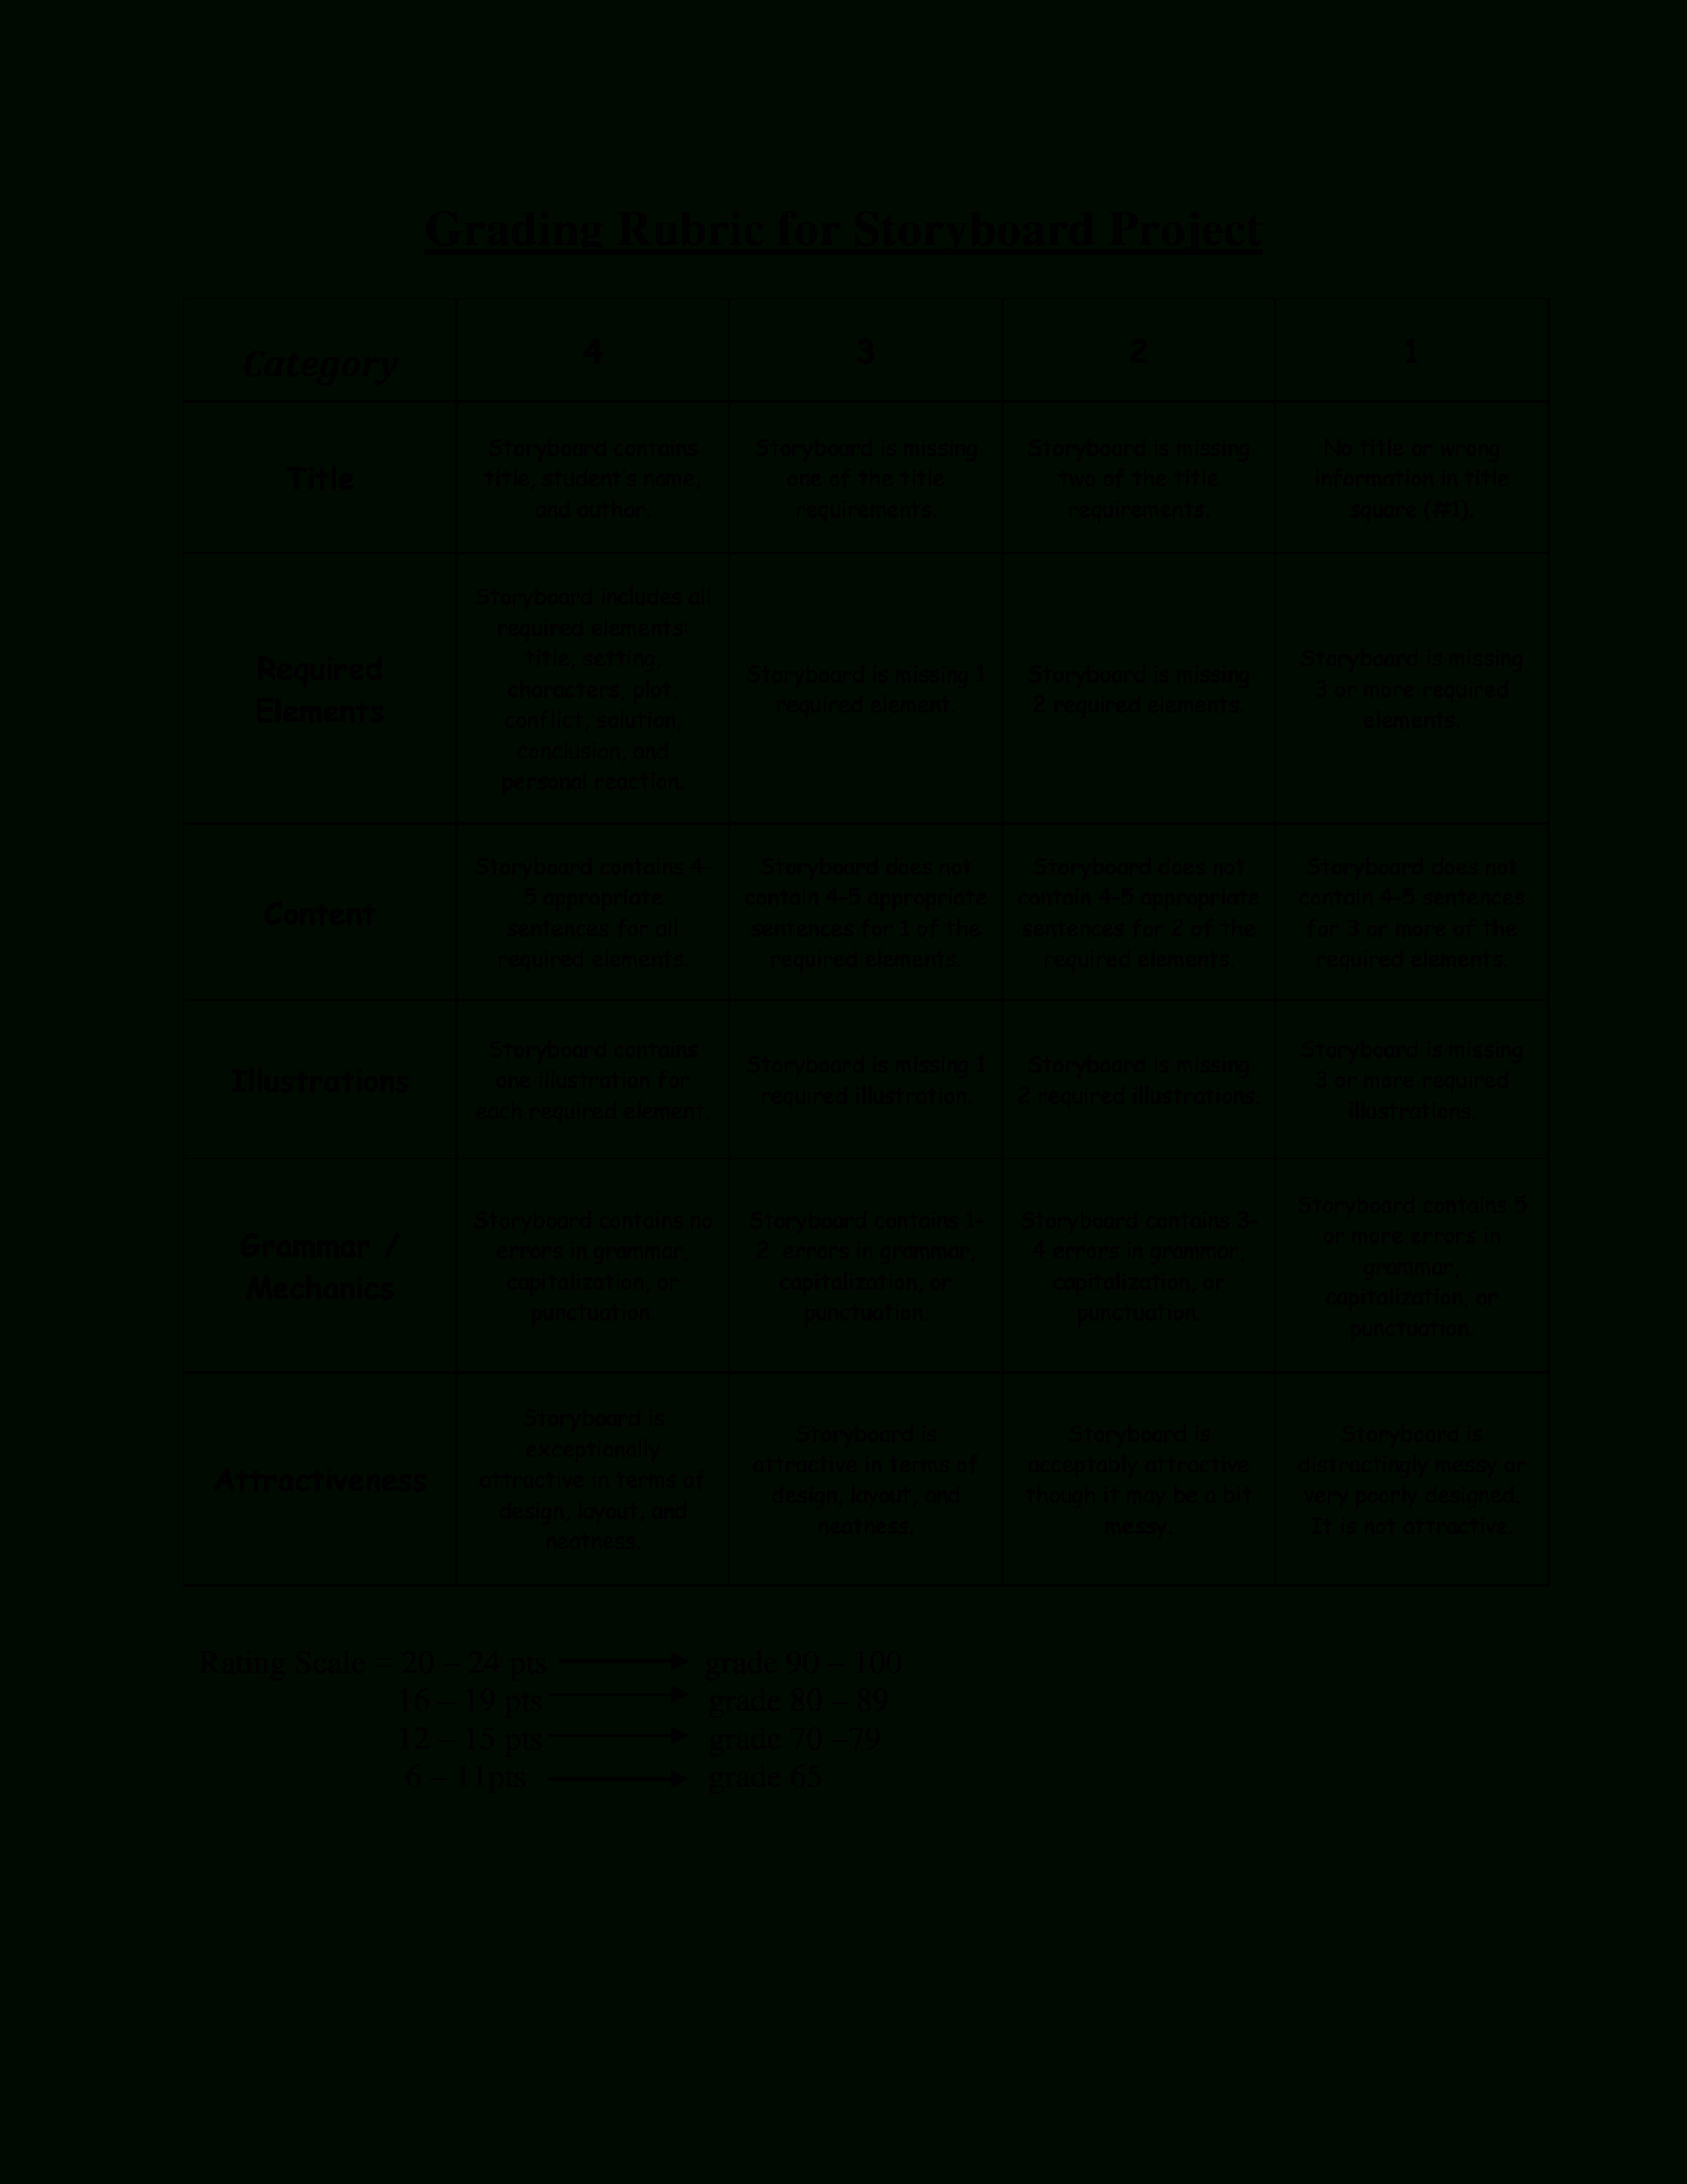 Grading Rubric For Storyboard Project | Templates At Throughout Blank Rubric Template